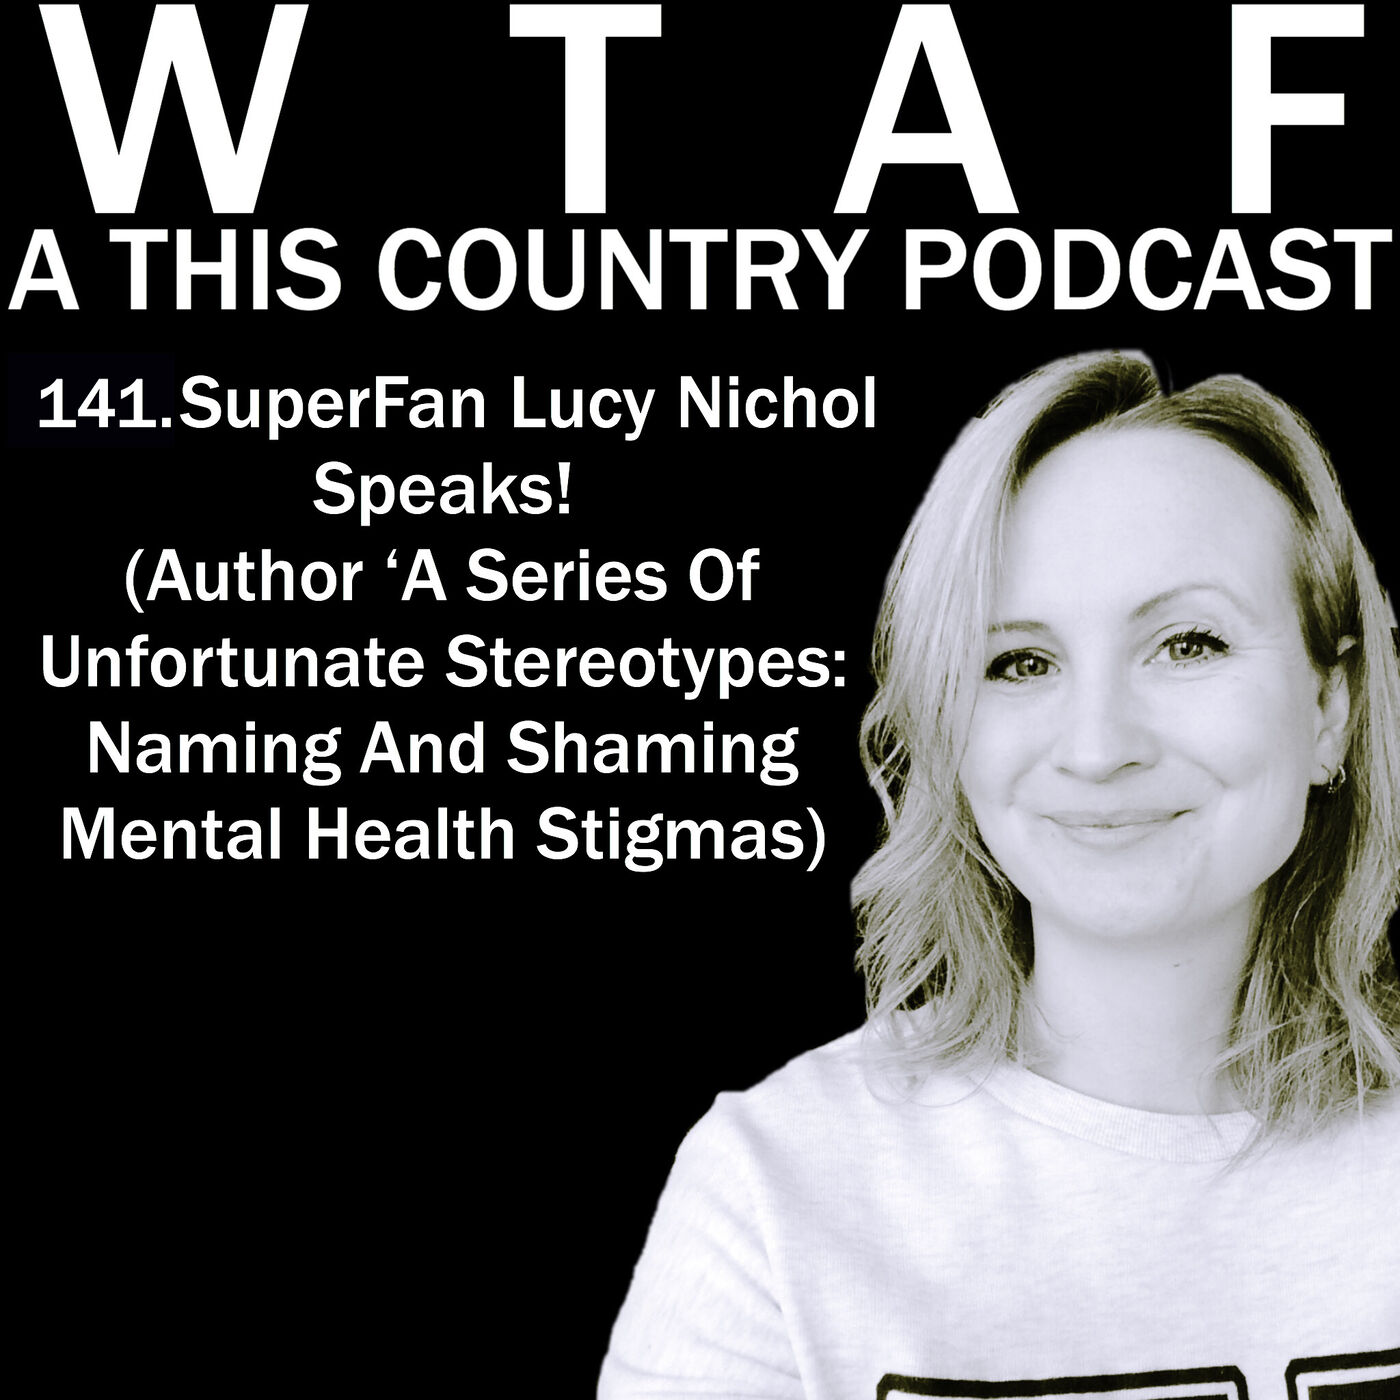 141. SuperFan Lucy Nichol Speaks! (Author 'A Series Of Unfortunate Stereotypes: Naming And Shaming Mental Health Stigmas)